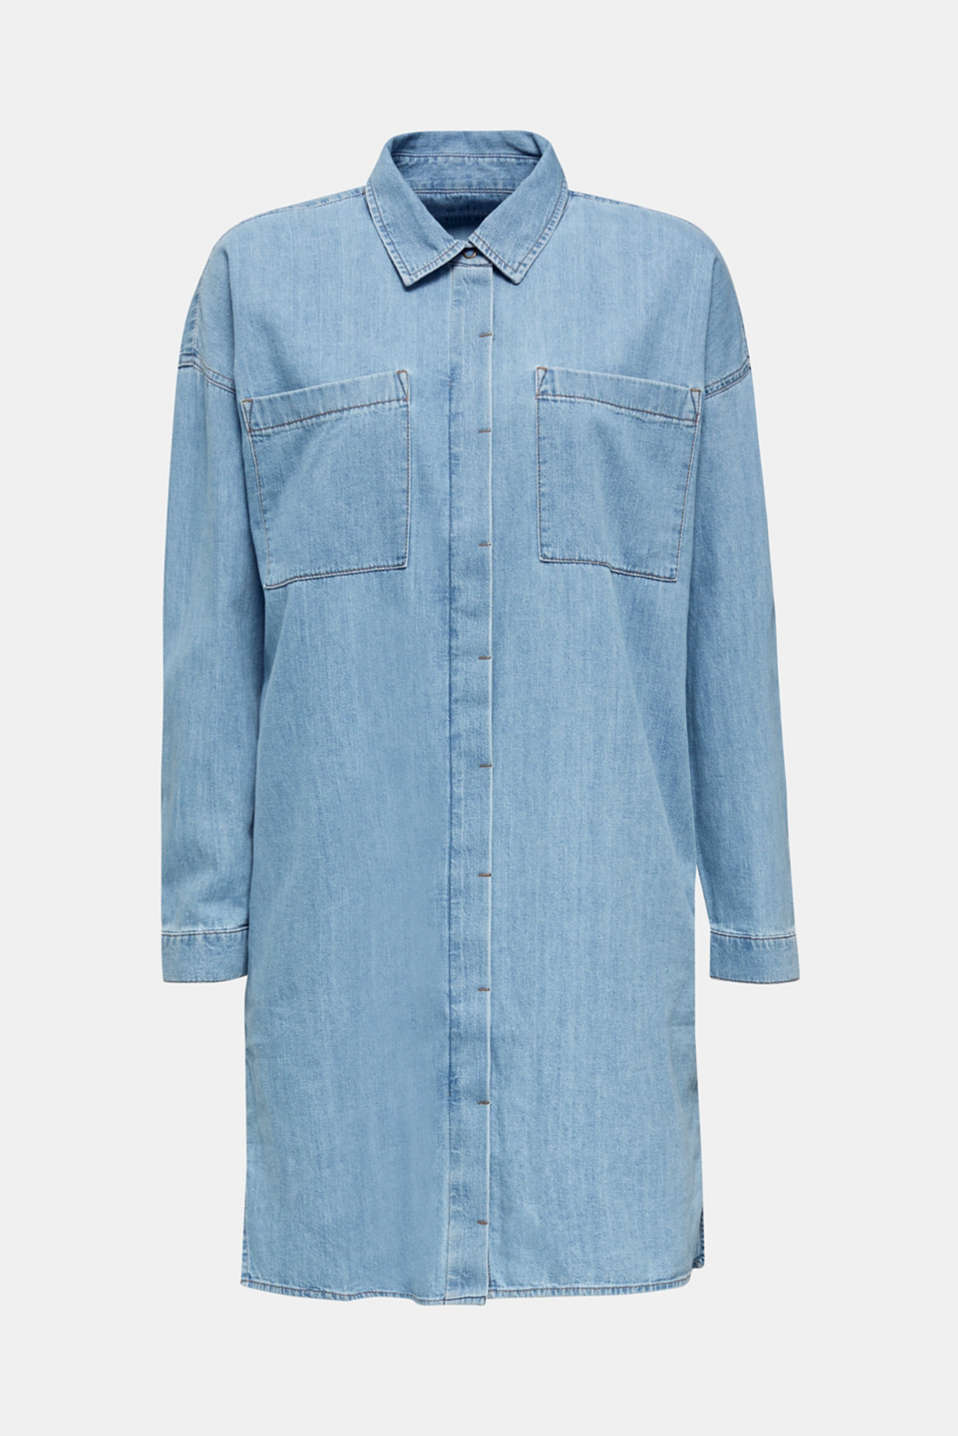 100% cotton denim shirt dress, BLUE LIGHT WASH, detail image number 7